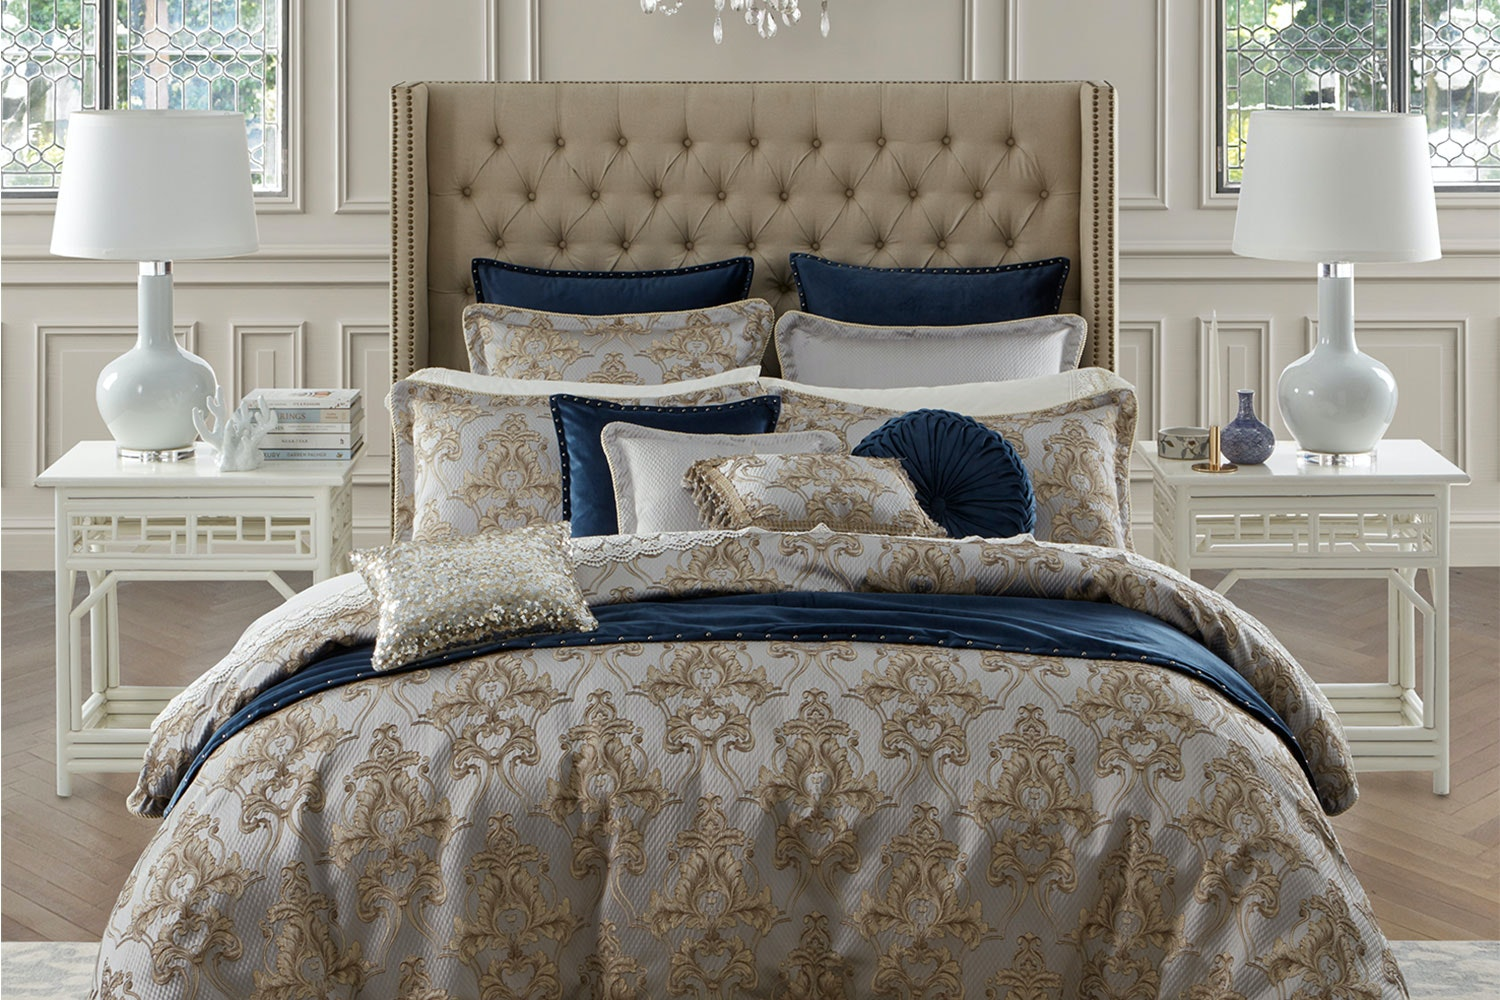 Windsor Gold Duvet Cover Set by Da Vinci